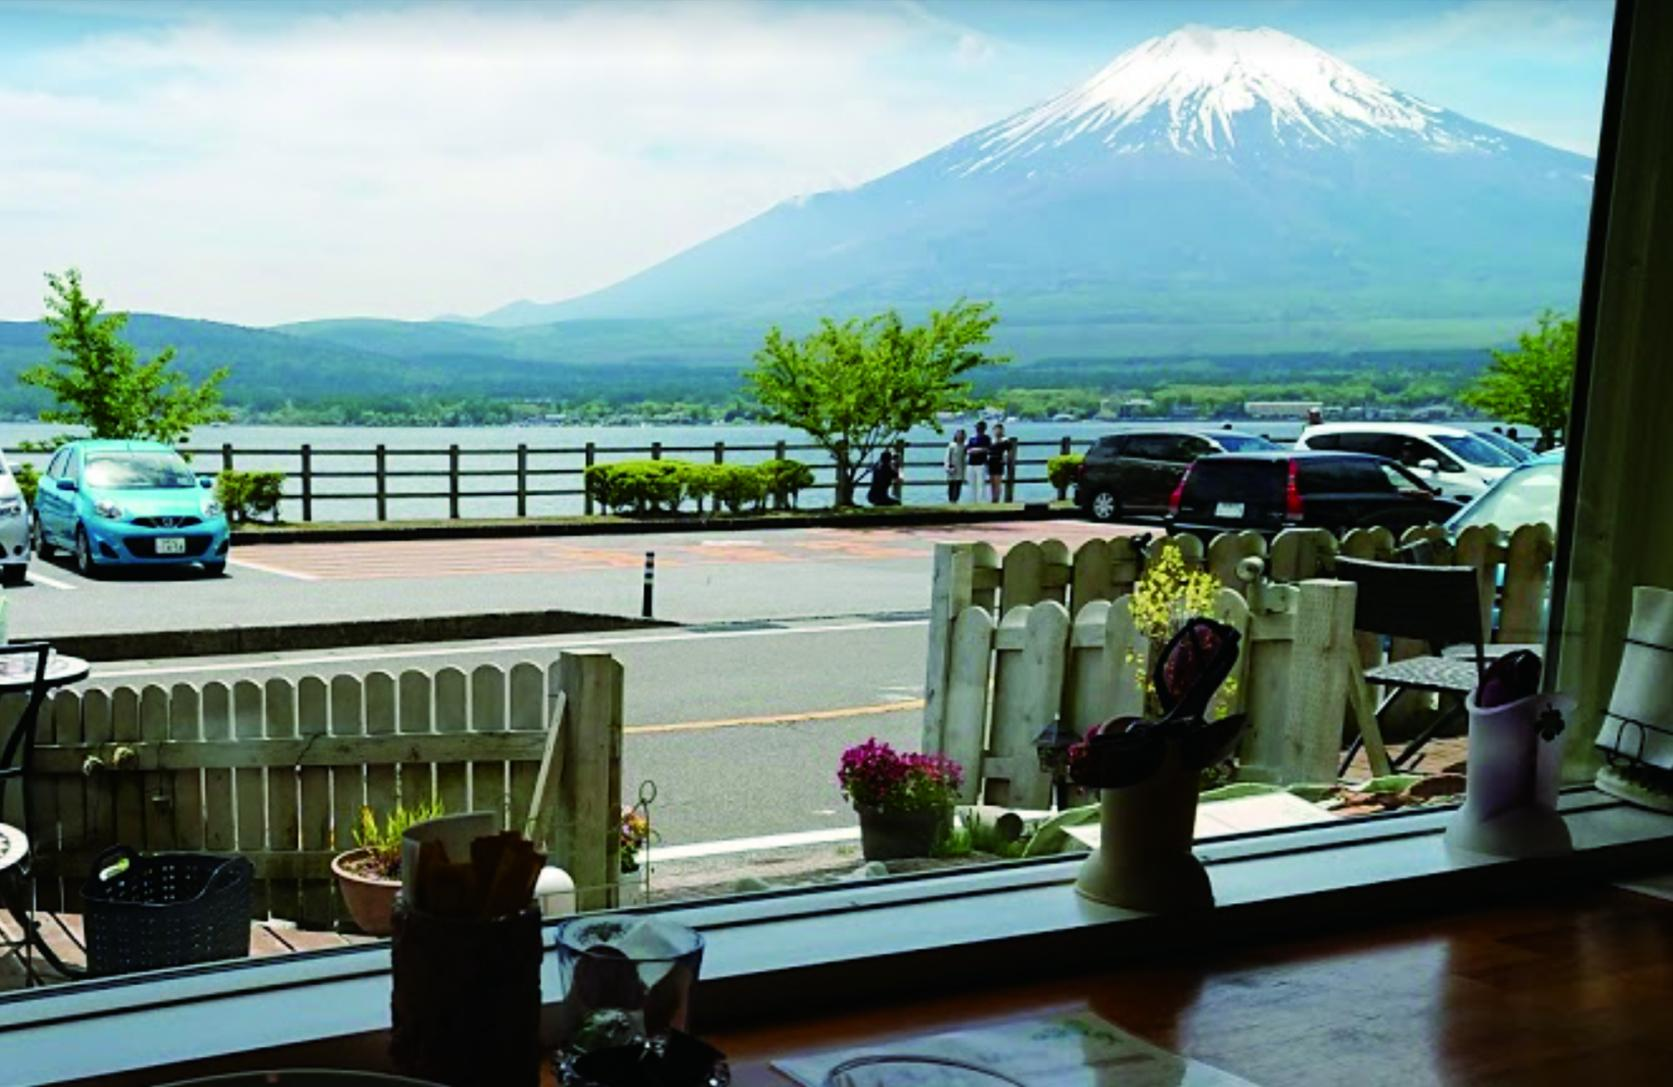 There are many fashionable cafes and restaurants in Yamanakako!-3